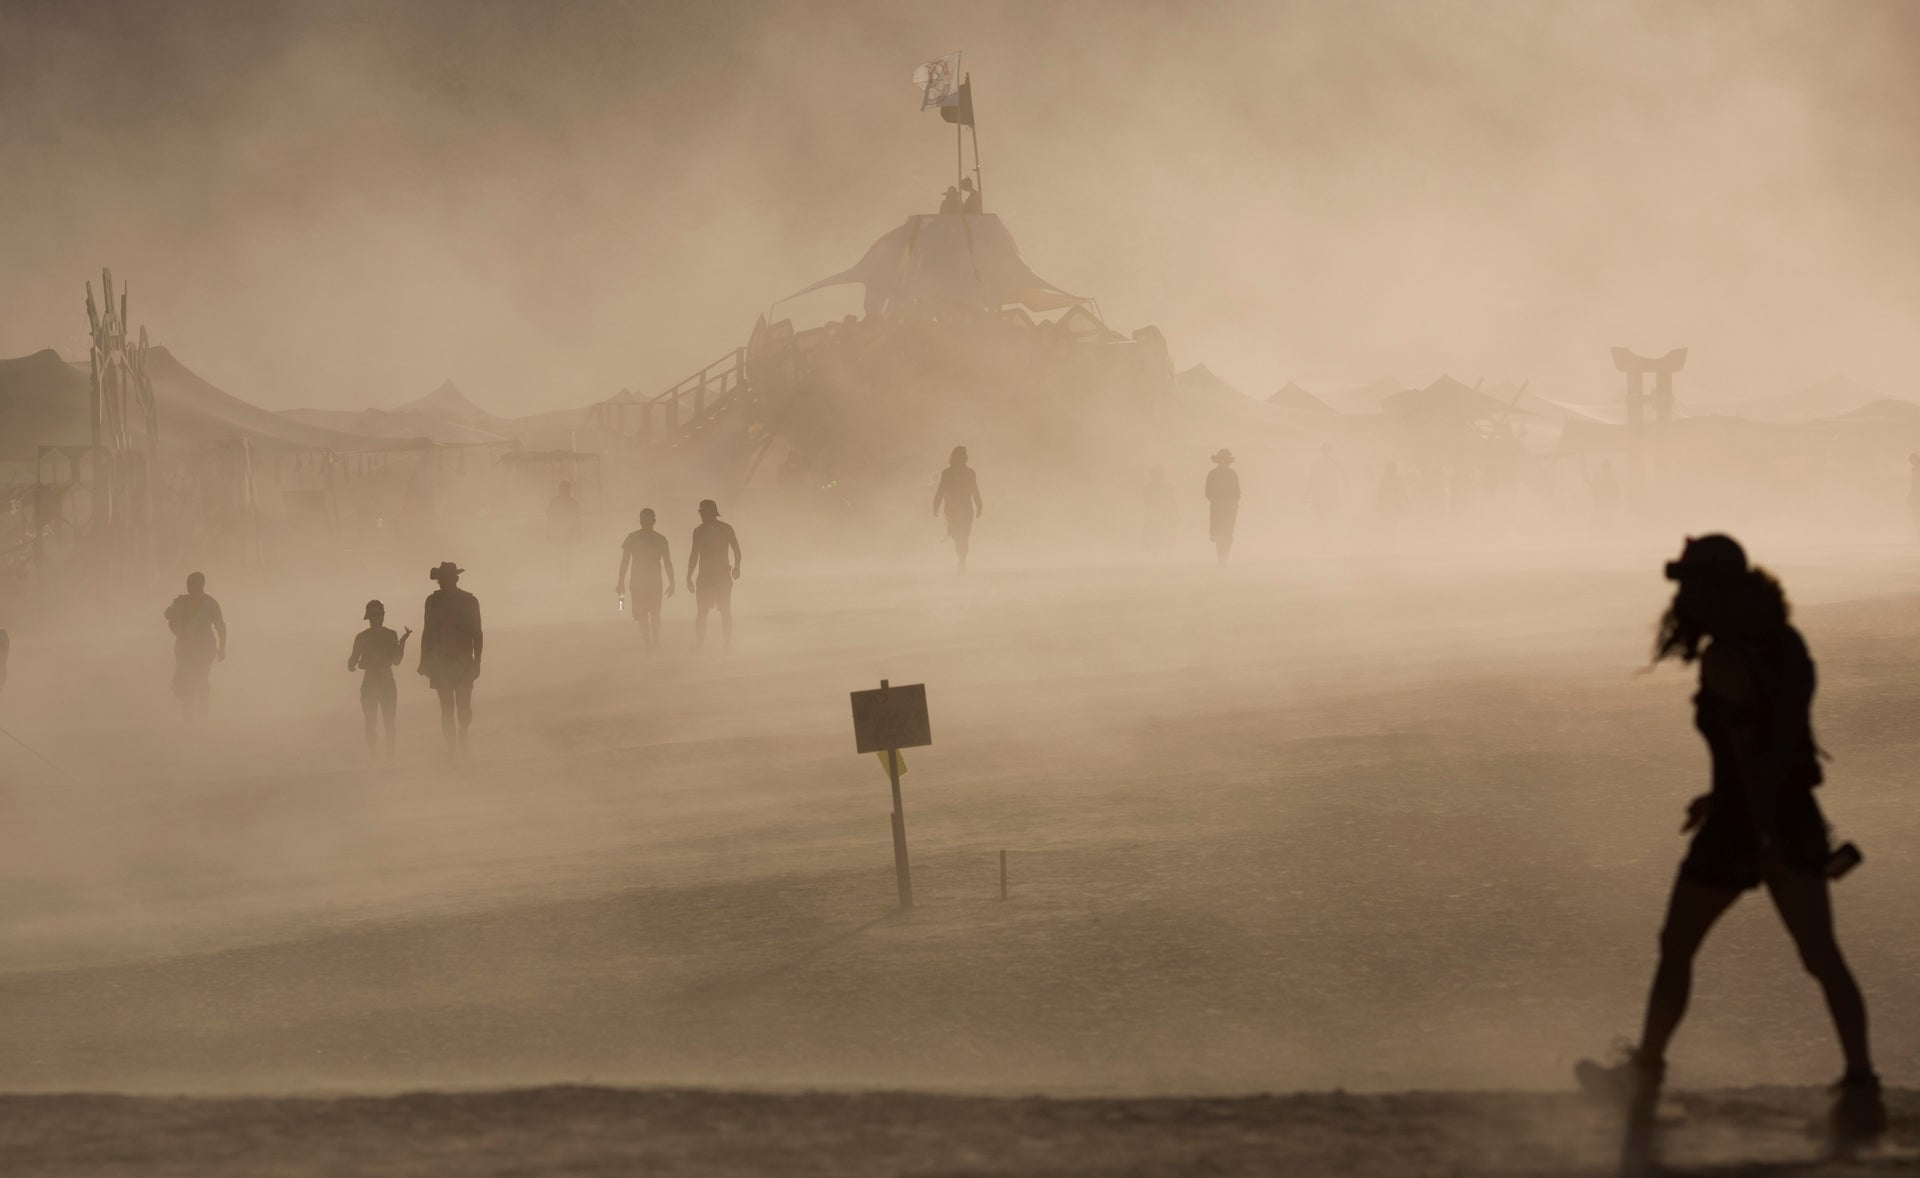 The Midburn festival in the Negev, the Israeli answer to the 'Burning Man' festival